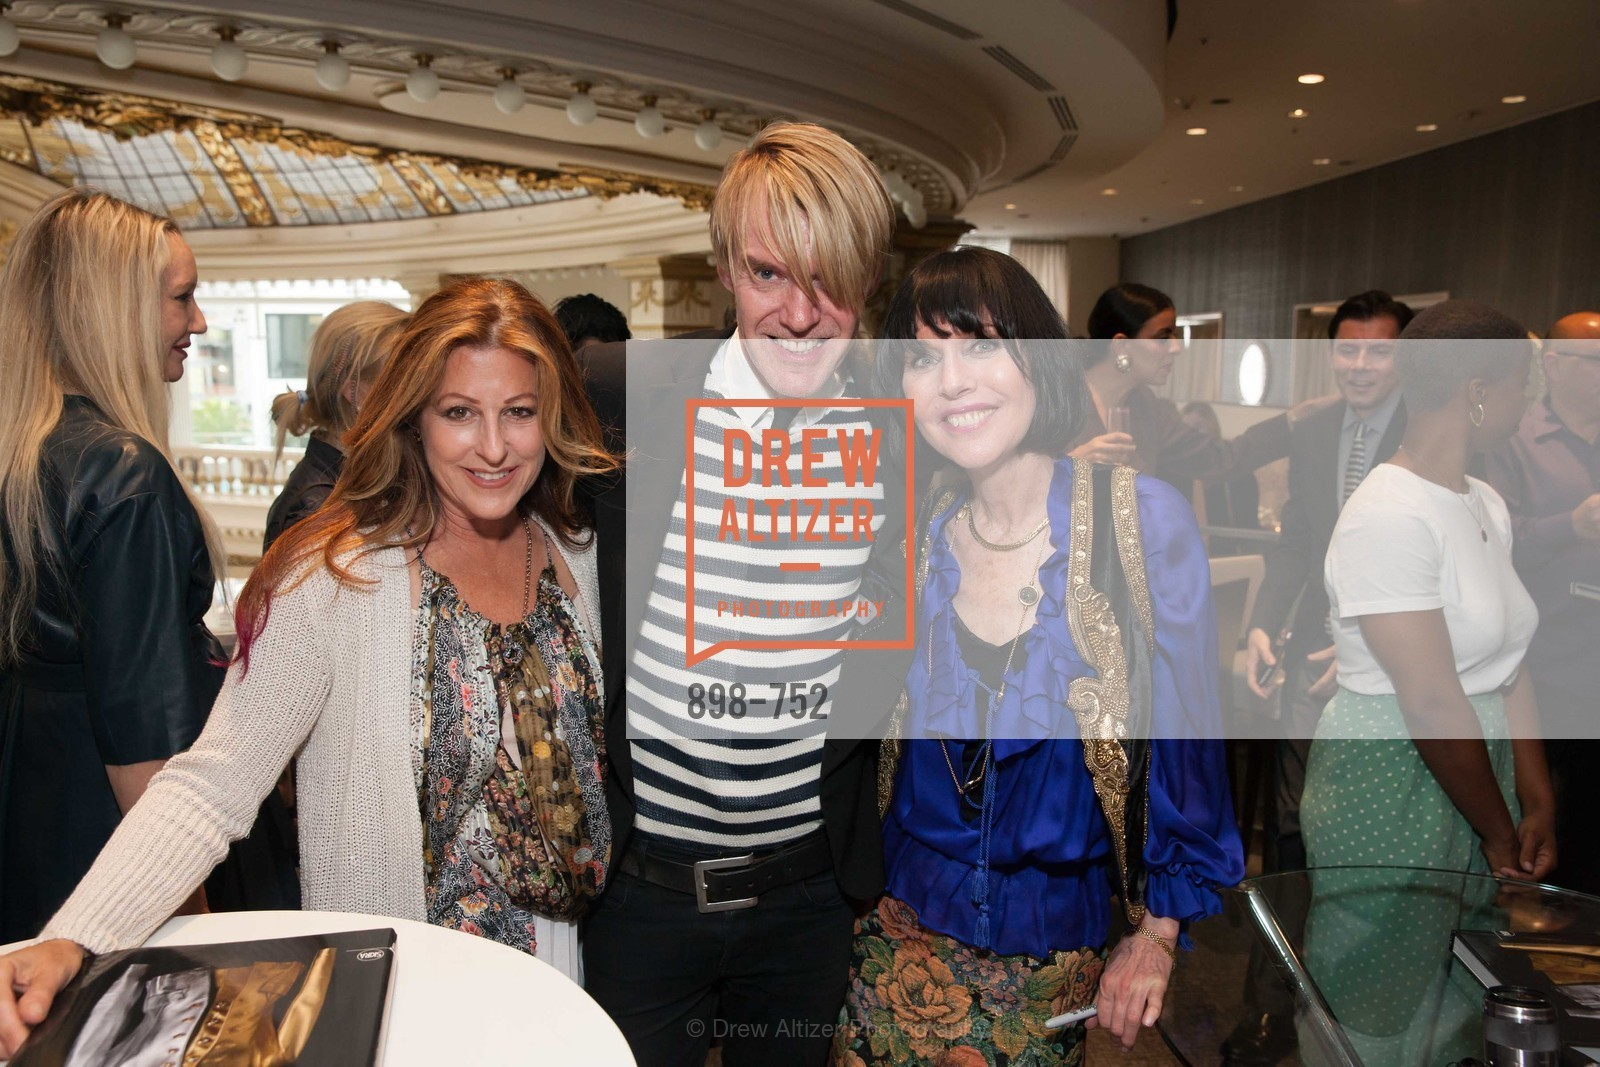 Victoria Loren Miller, Ken Downing, Christine Suppes, Electric Fashion Book Signing with Christine Suppes & Ken Downing at THE ROTUNDA, NEIMAN MARCUS, US, May 27th, 2015,Drew Altizer, Drew Altizer Photography, full-service agency, private events, San Francisco photographer, photographer california